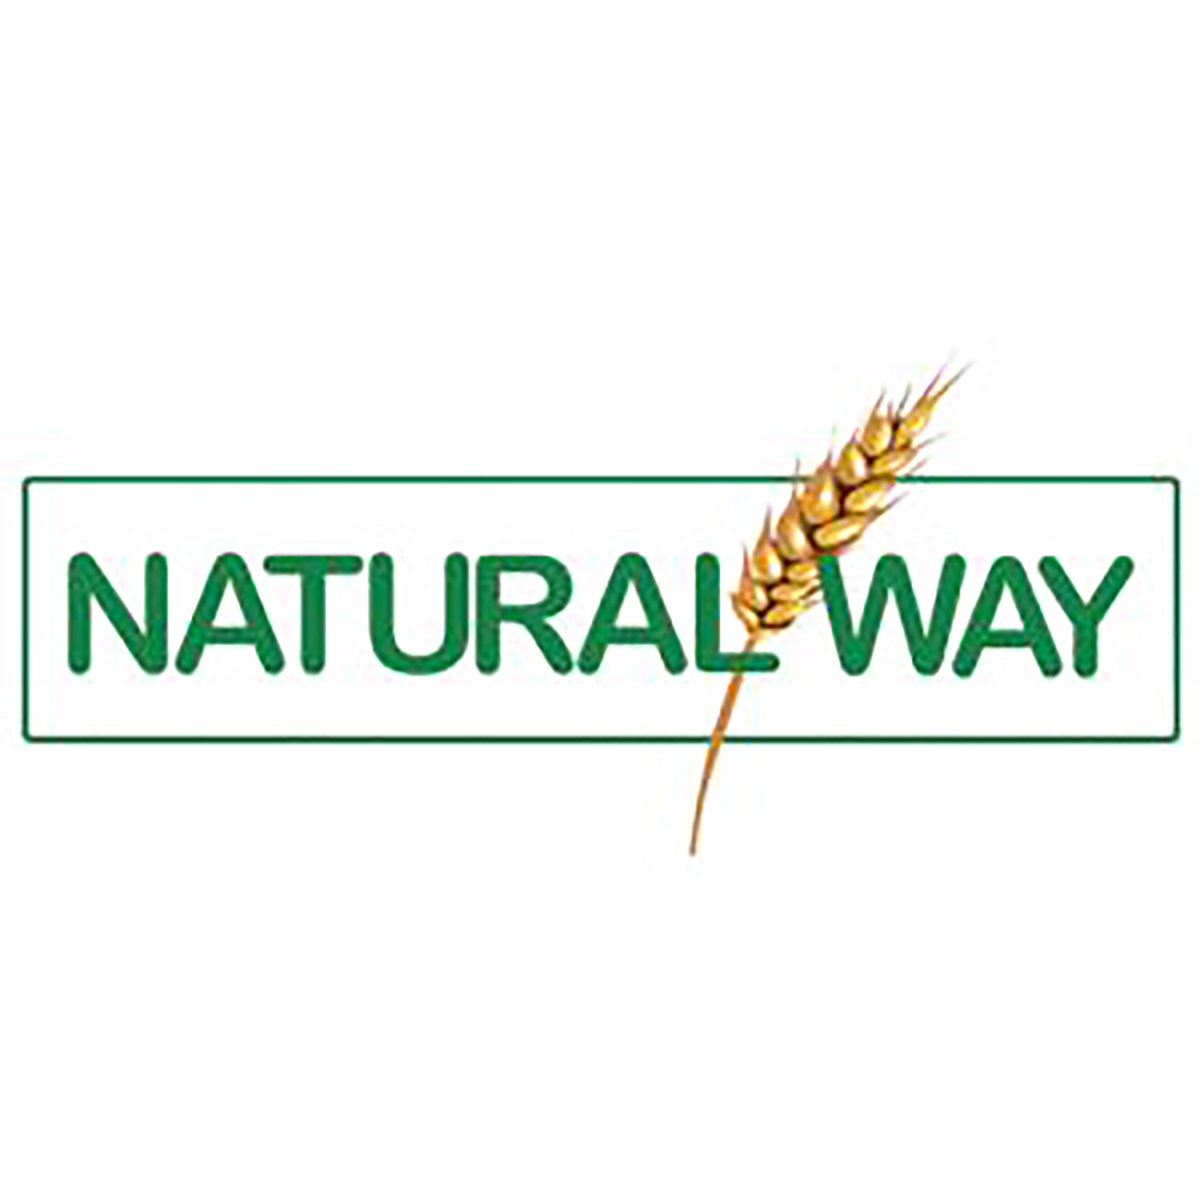 Natural way